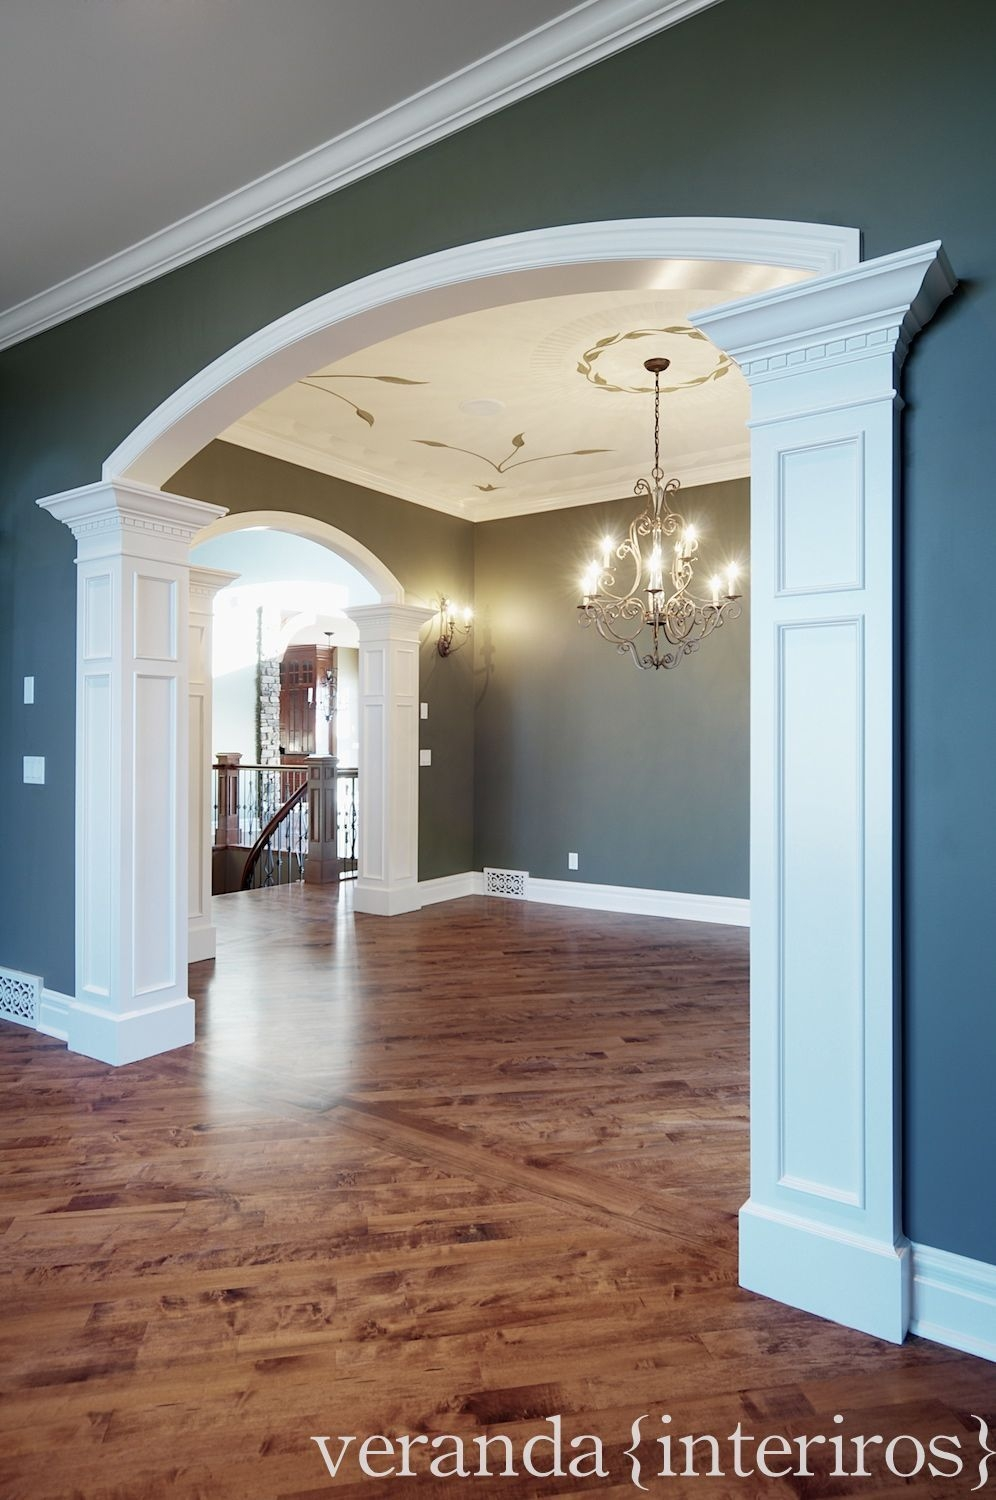 Past Work With Images  Veranda Interiors Archway Decor Dining Room Remodel